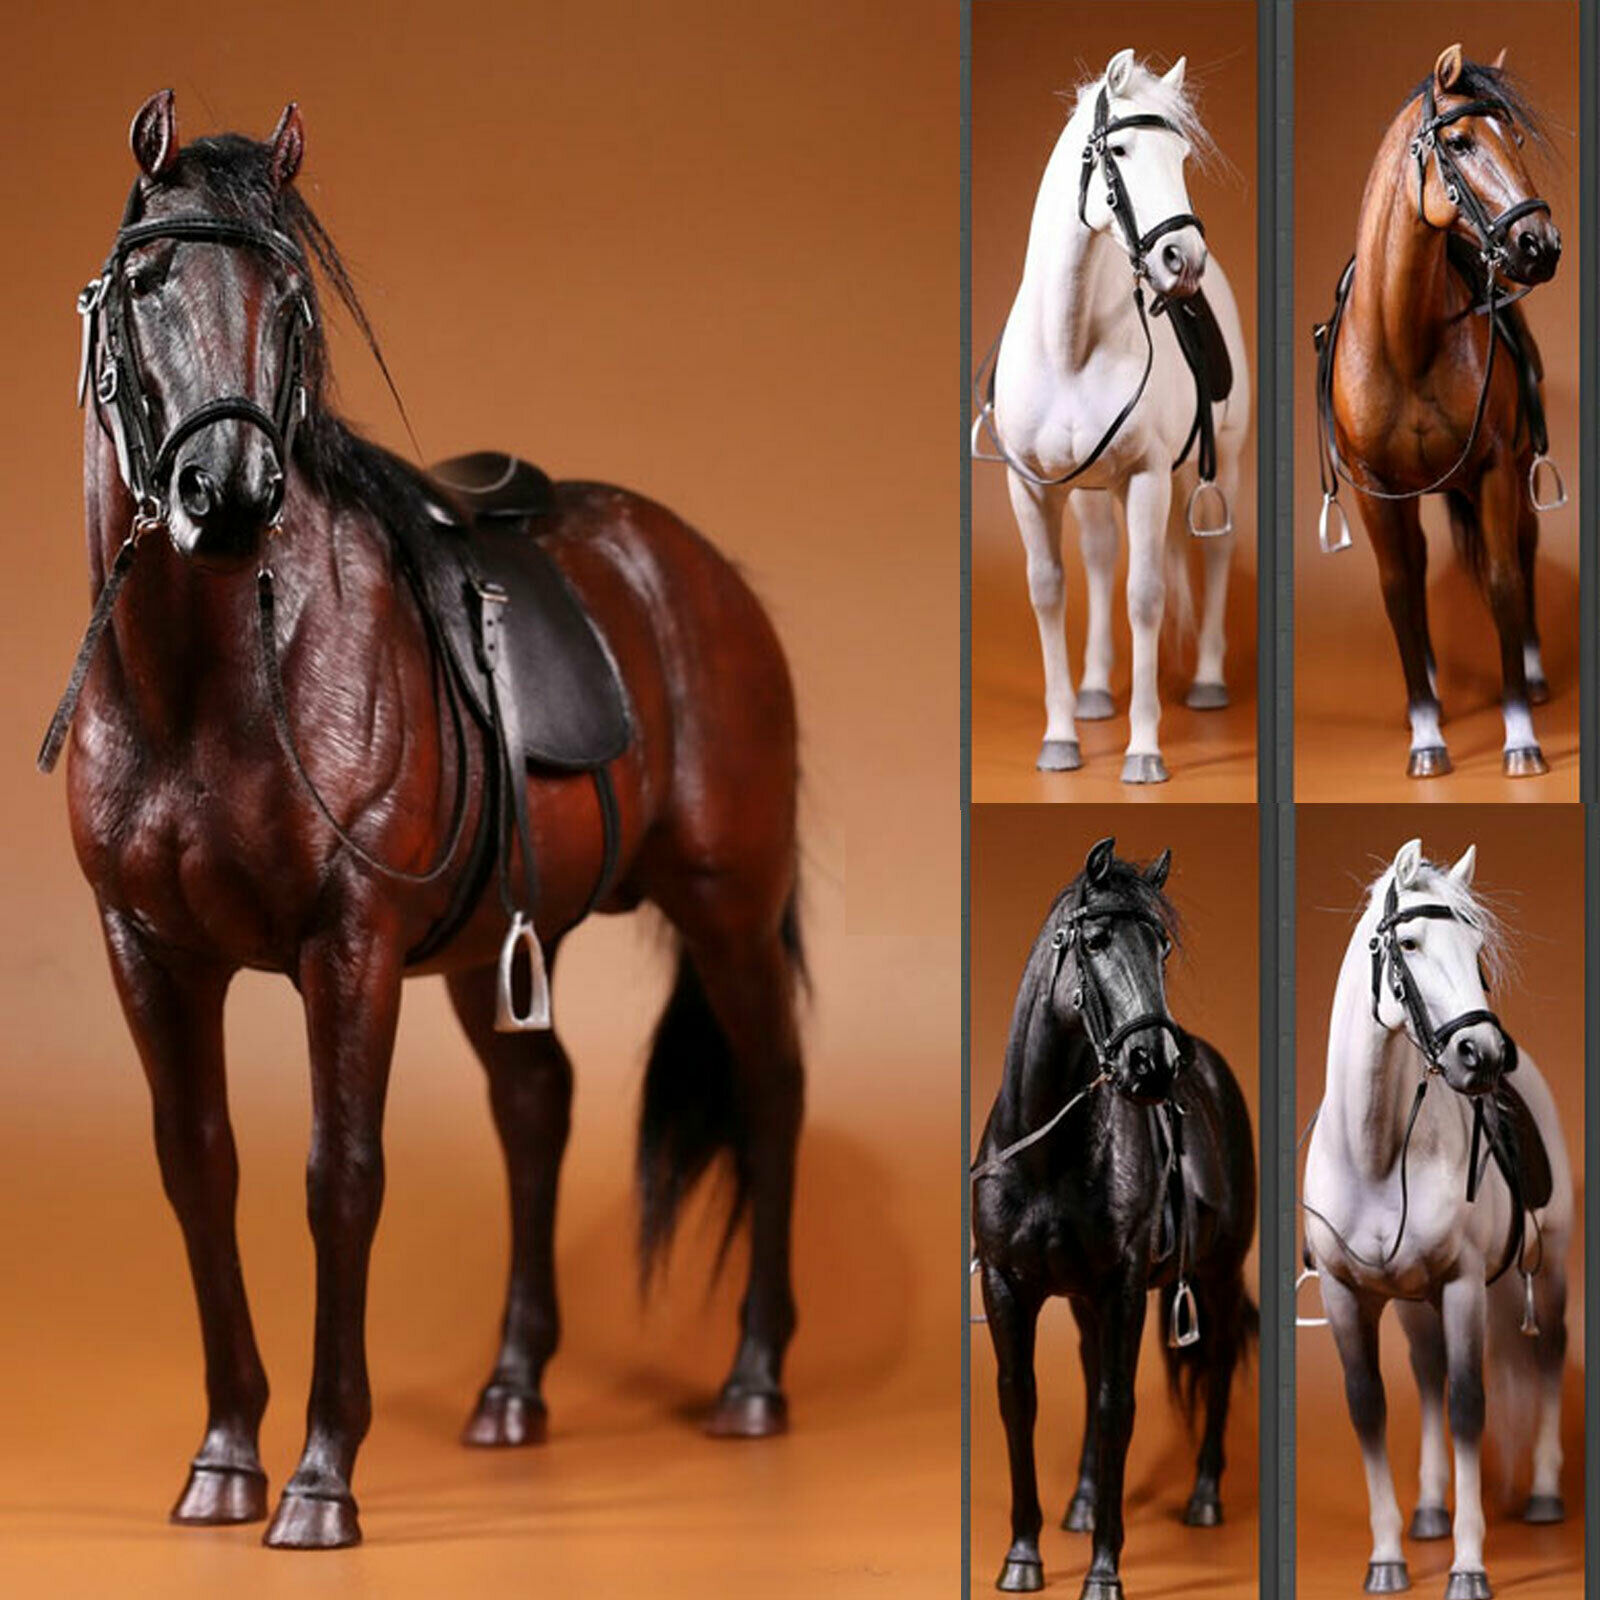 1 6 Scale Mr.Z Animal Simulation Toys Hanoveria Horse Resin Figure 5 color Model